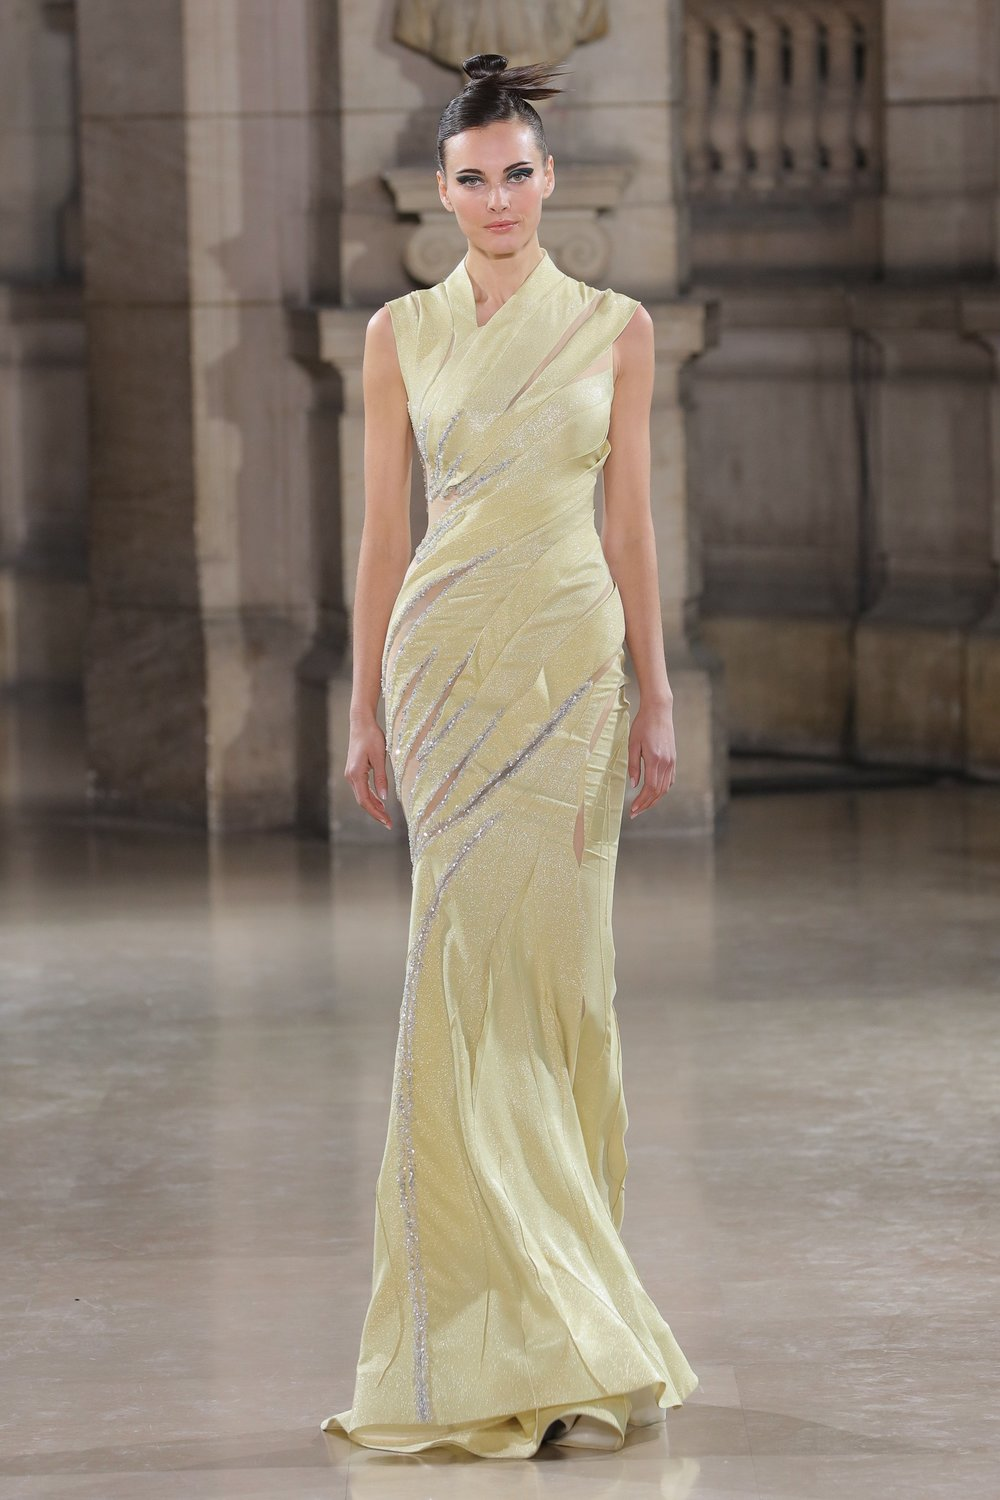 TONY_WARD_COUTURE_SS19_19.jpg